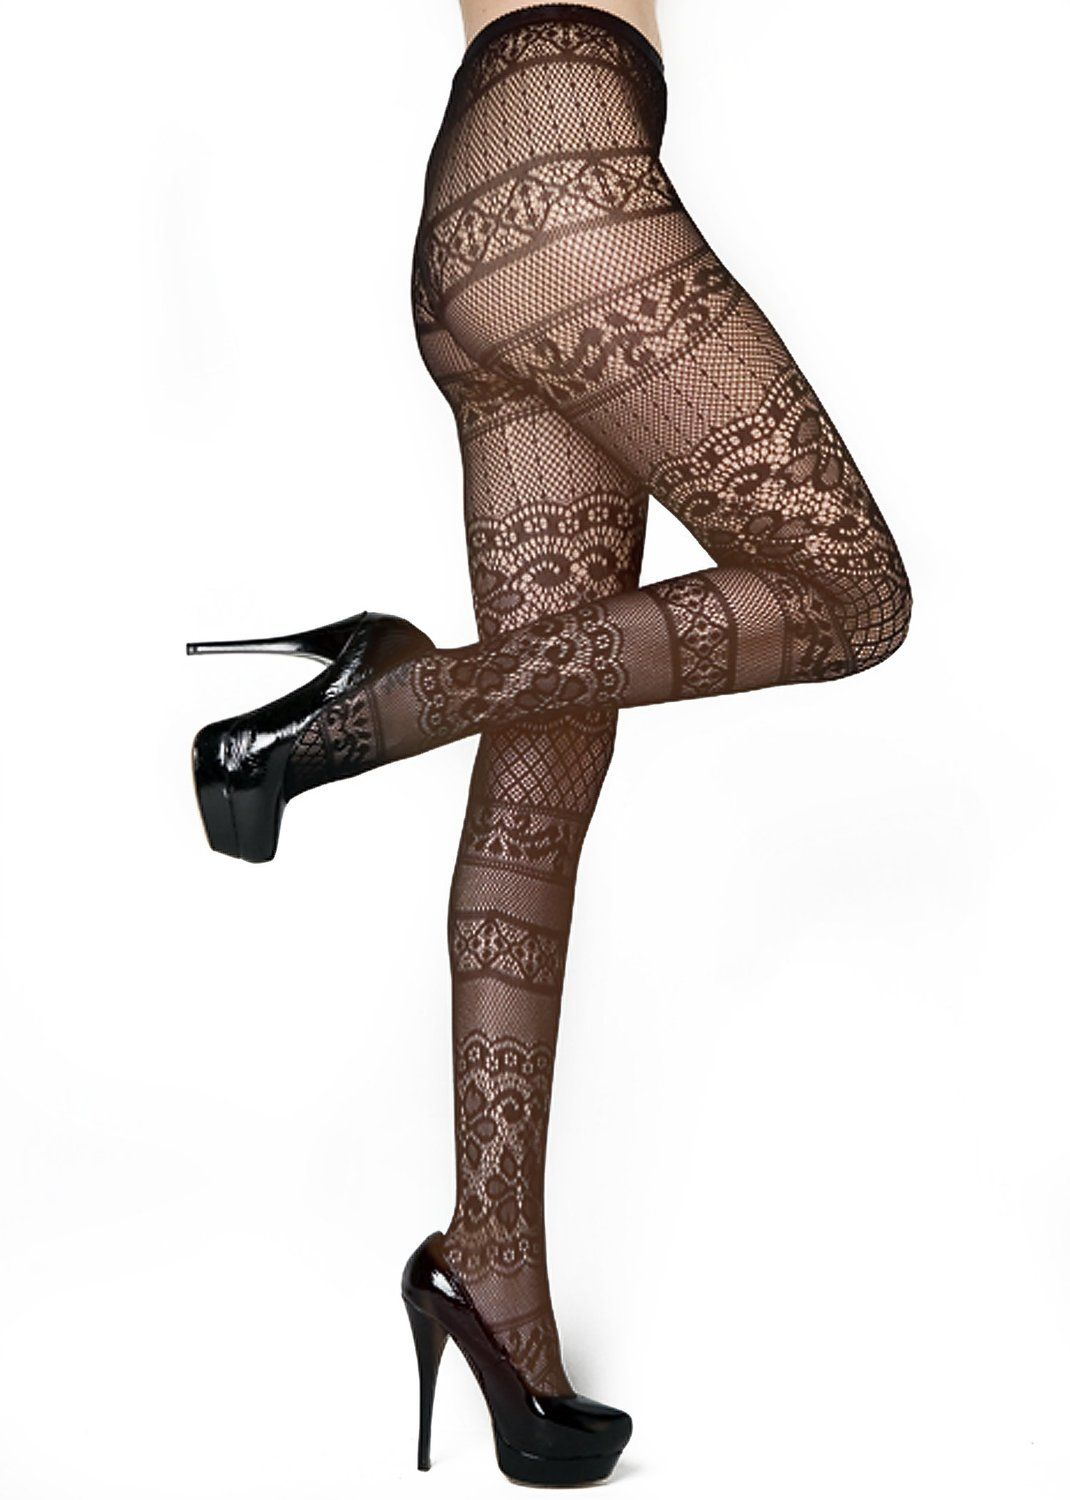 b5acb640774a6 Stella Elyse Fishnet Pantyhose, Moulin Rouge French Lace Stockings  (6110018) at Amazon Women's Clothing store: